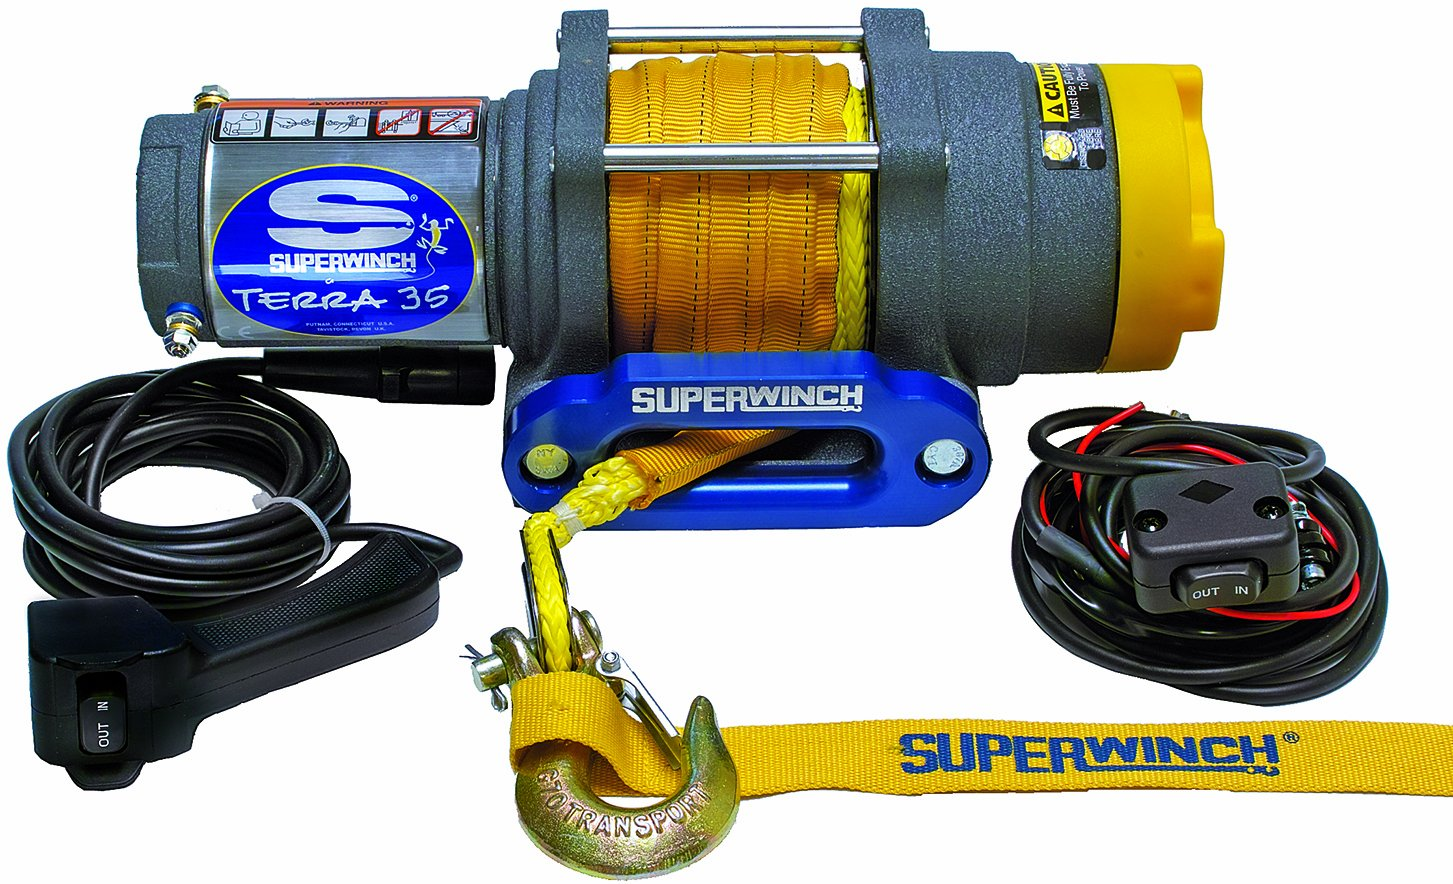 Amazon.com: Superwinch 1135230 Terra 35 3500lbs/1591kg single line pull  with hawse, handlebar mnt toggle, handheld remote, and synthetic rope:  Automotive